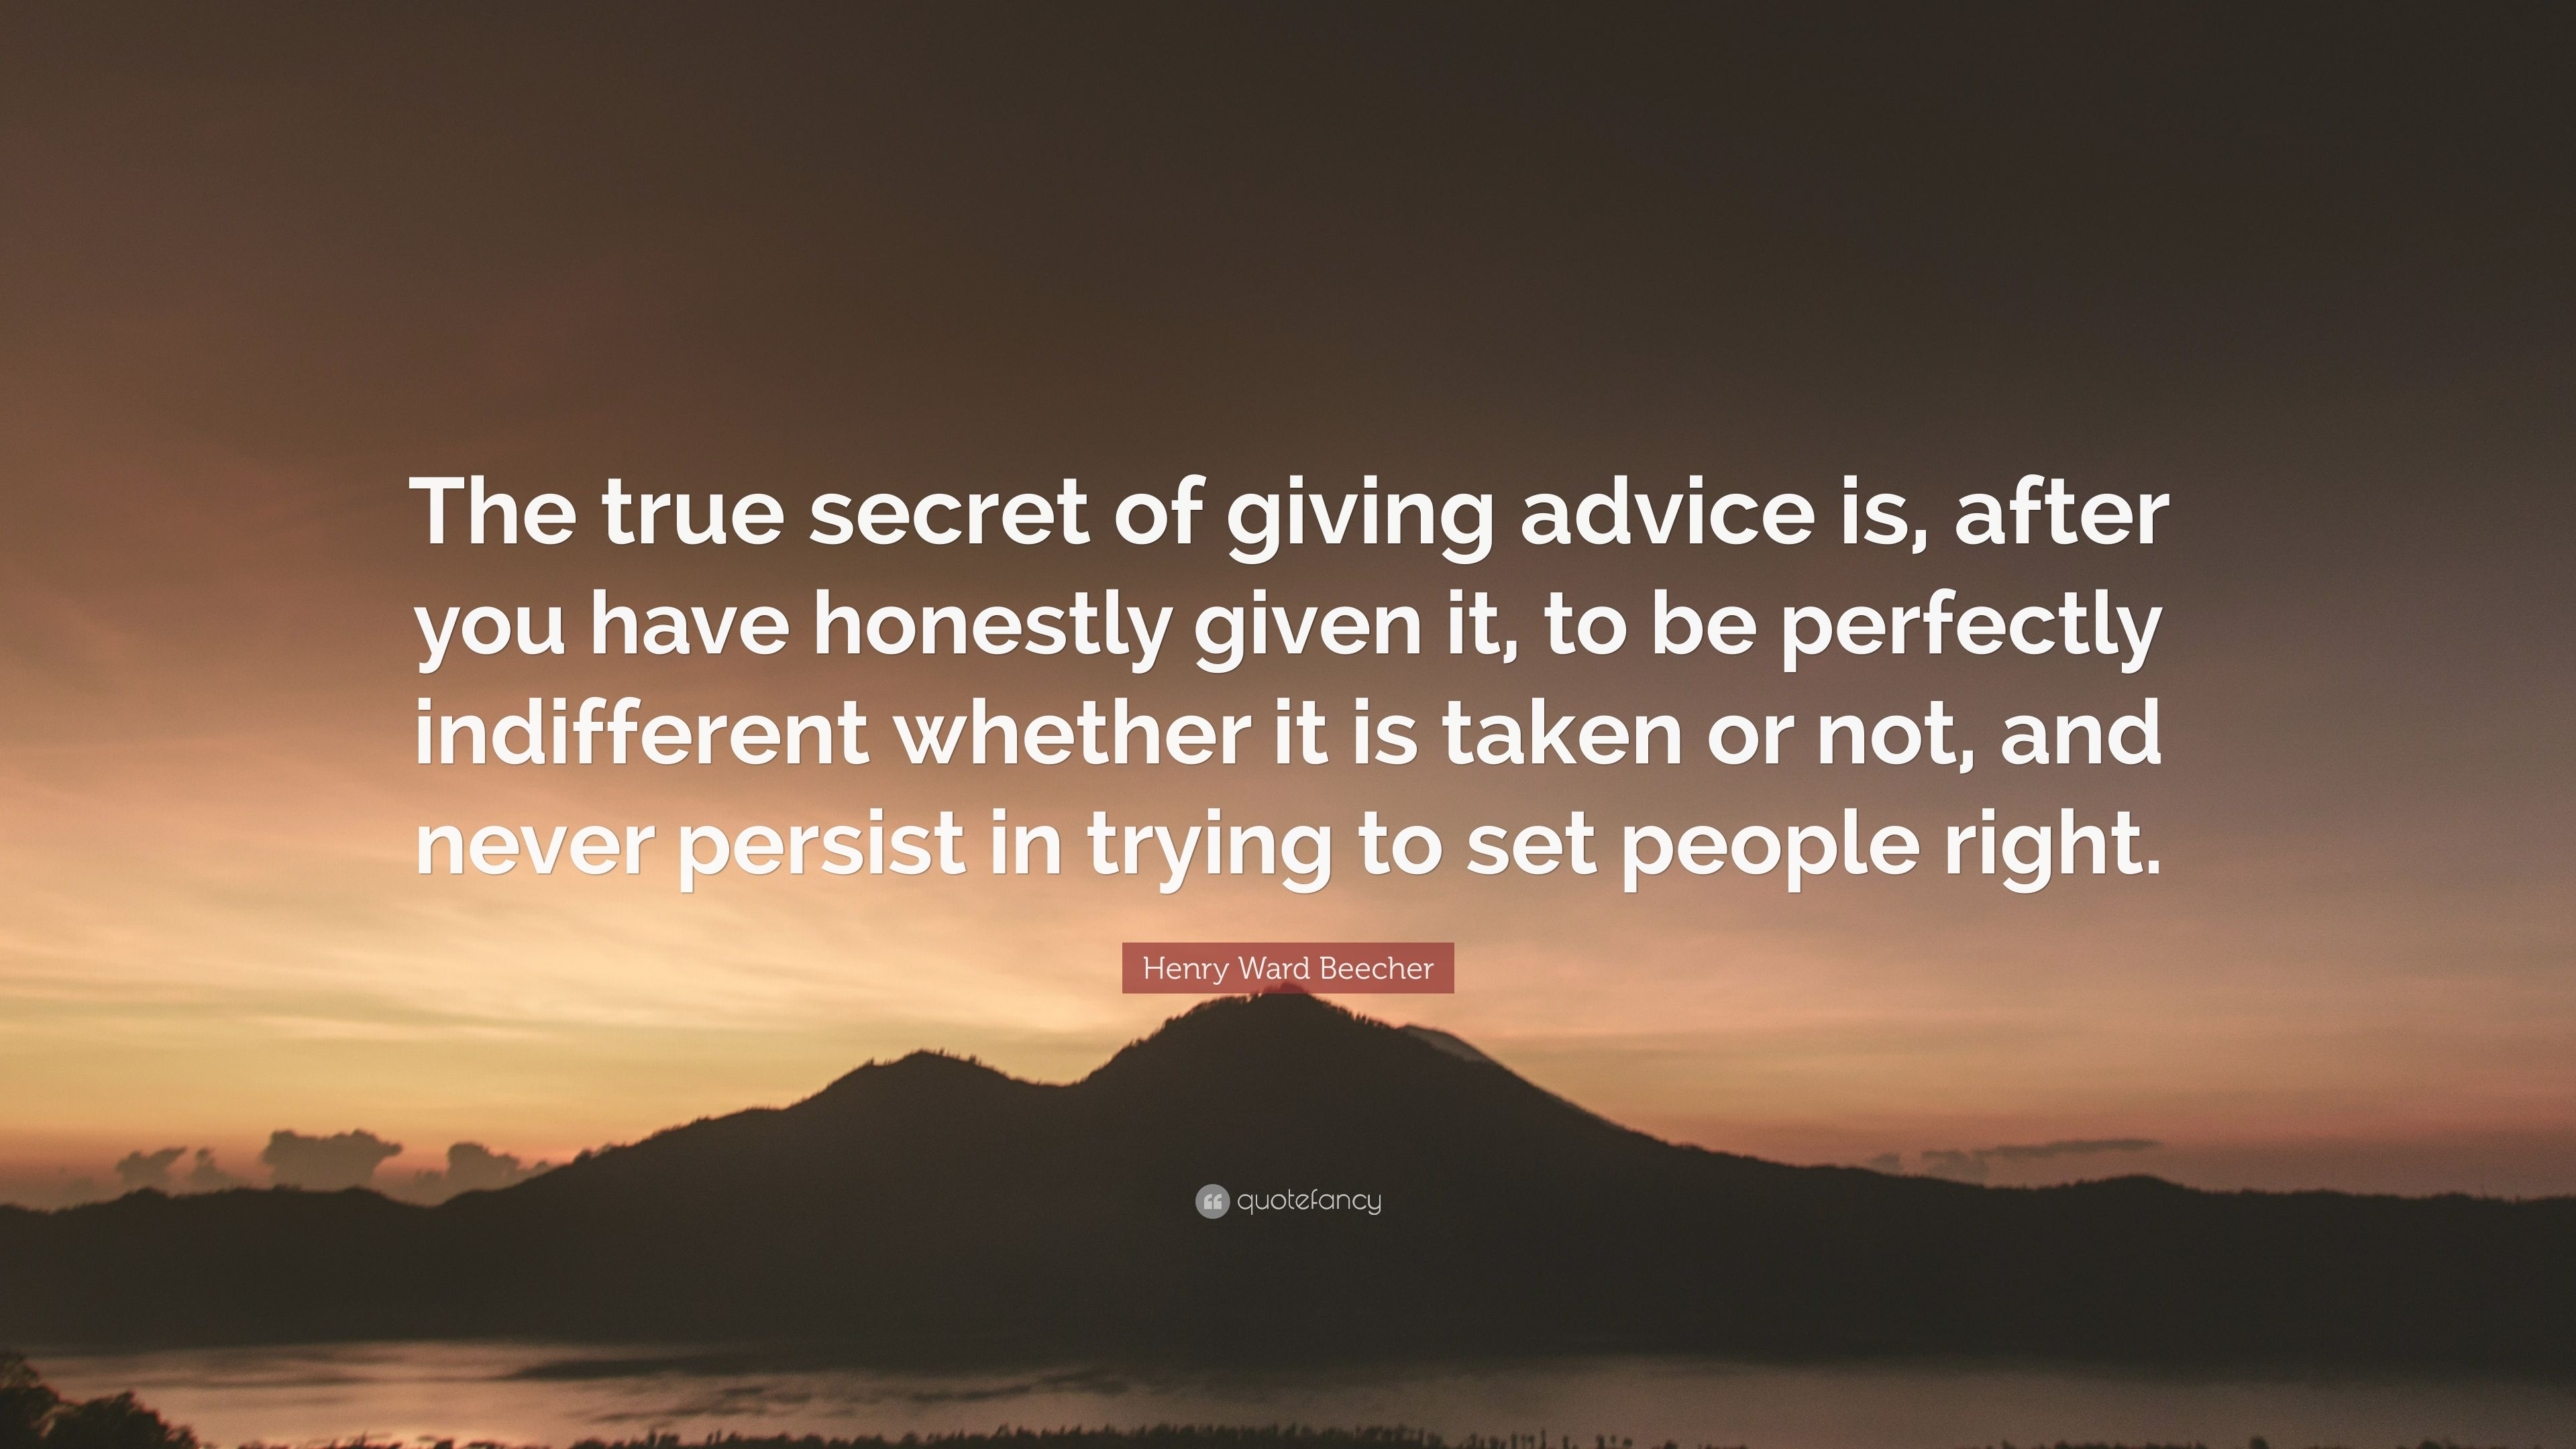 Amazing Henry Ward Beecher Quote: U201cThe True Secret Of Giving Advice Is, After You